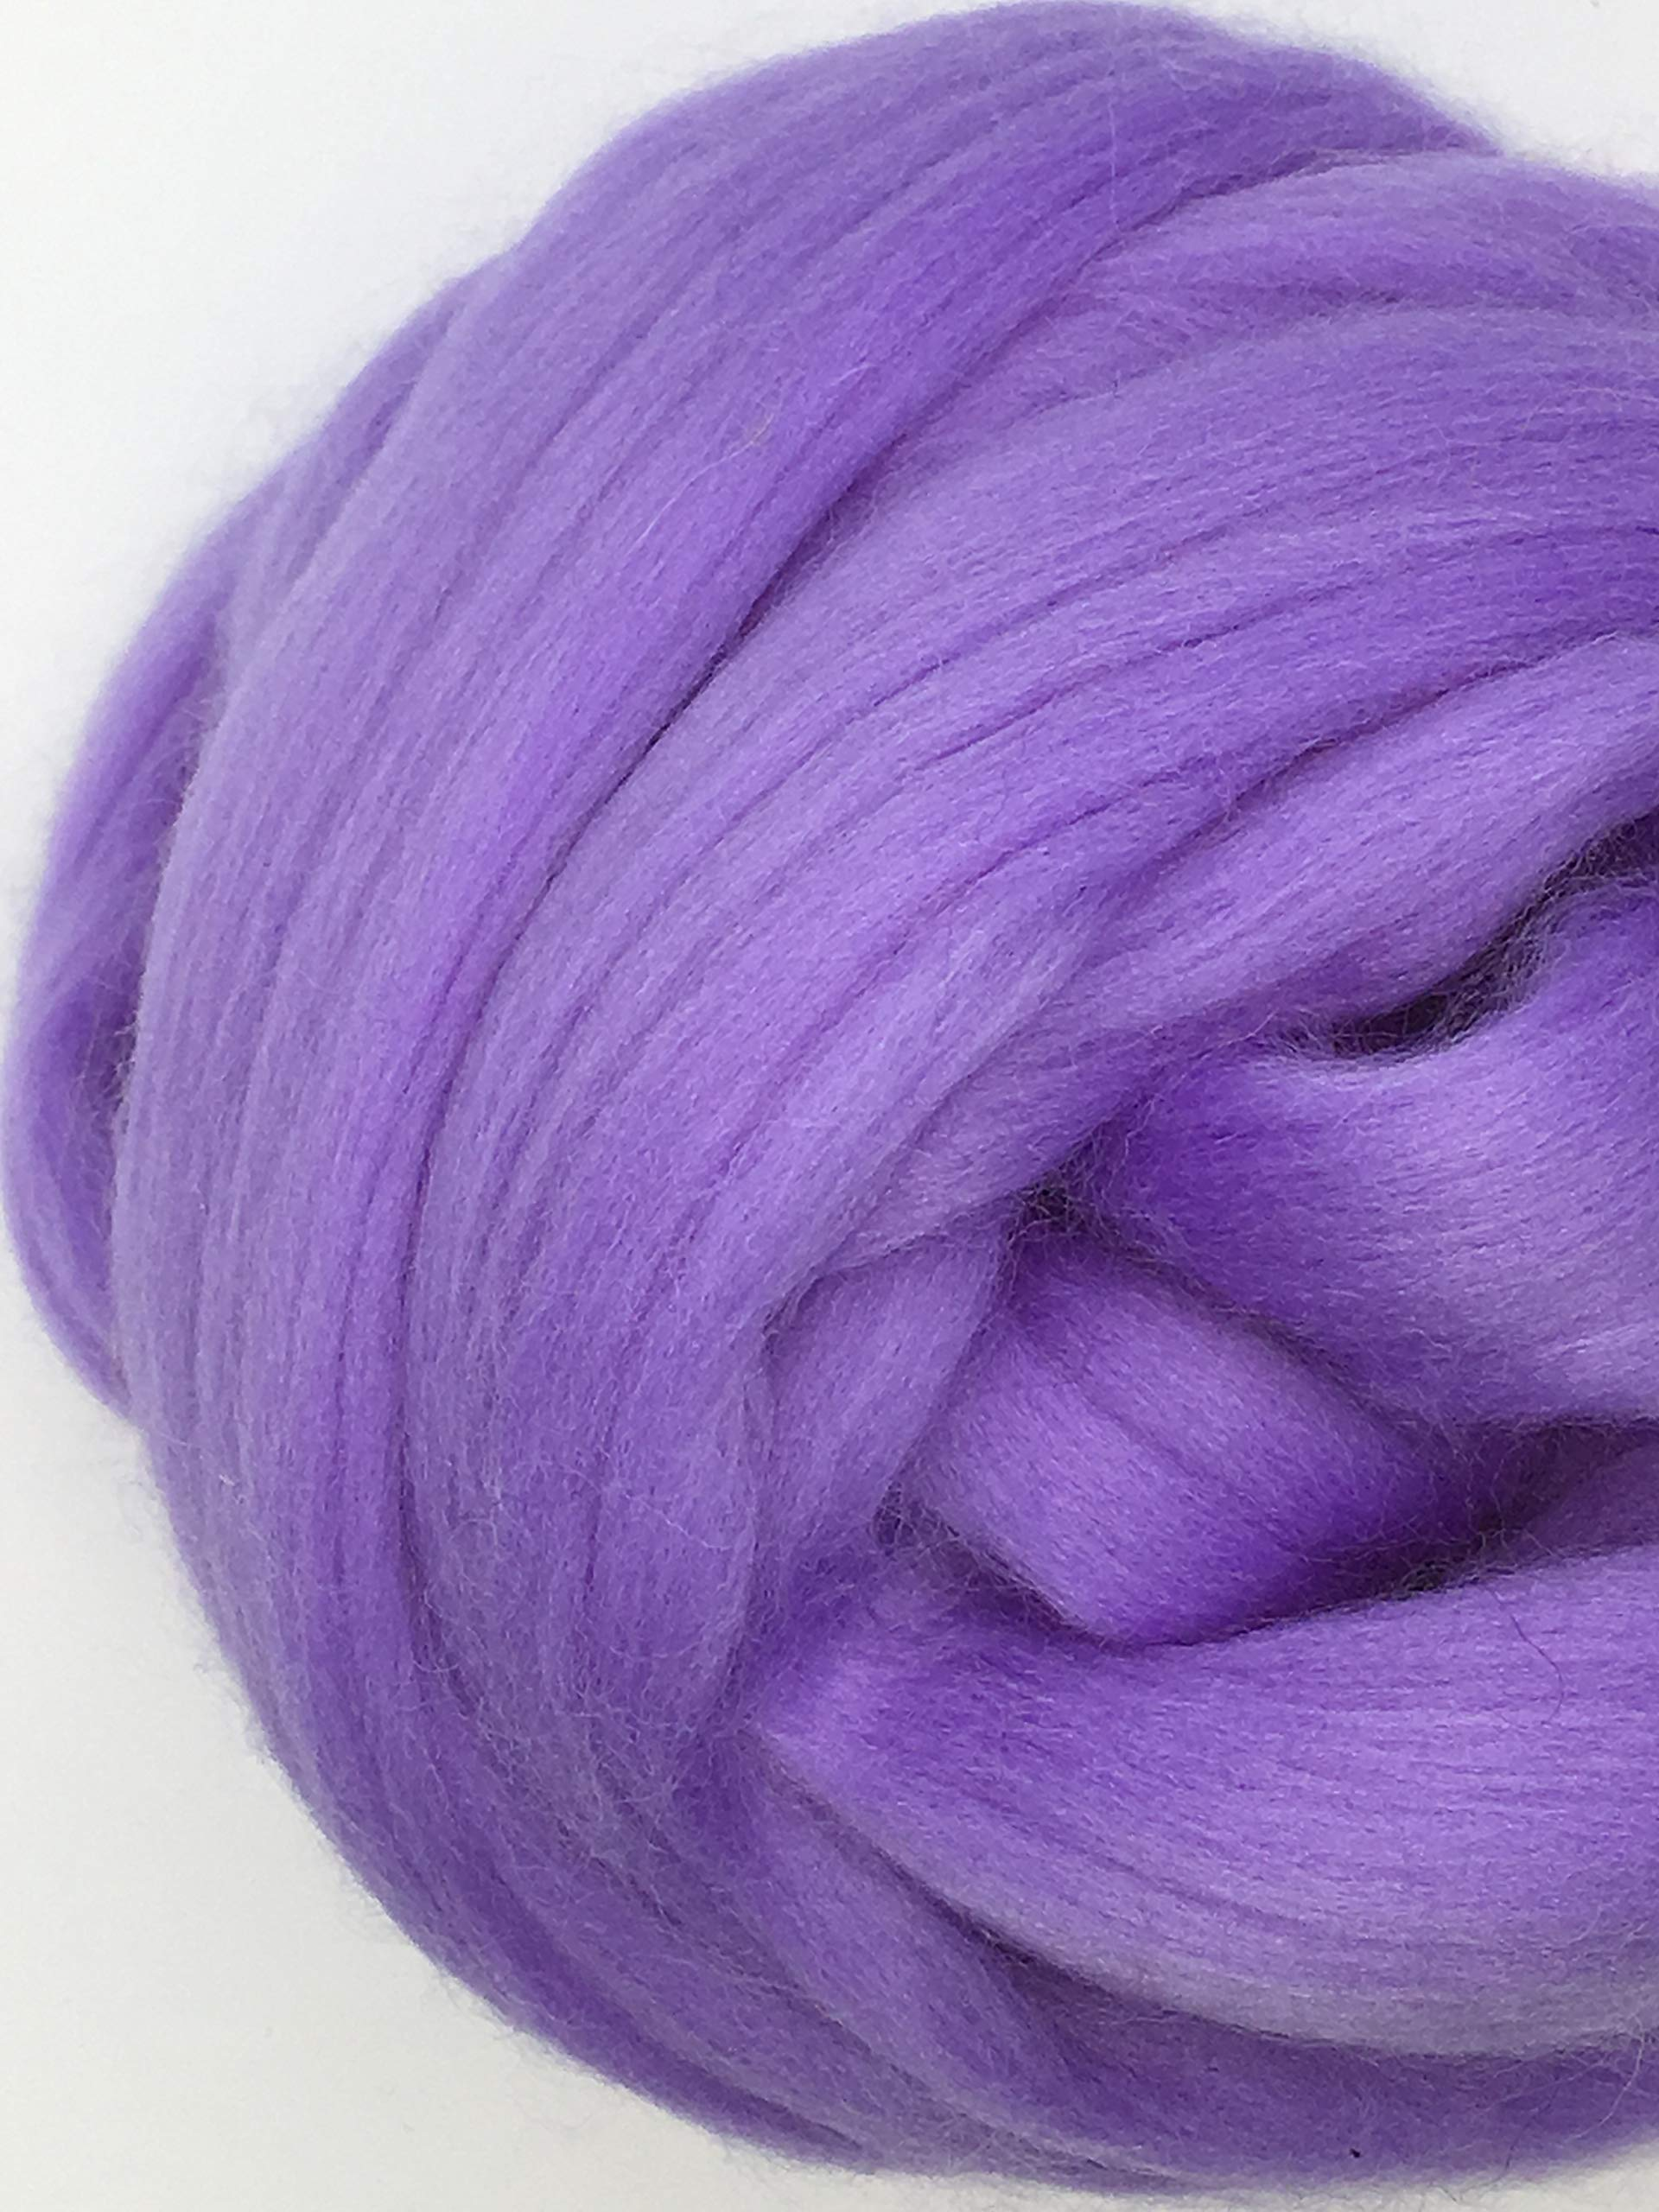 Periwinkle Merino Wool Top Roving Fiber Spinning, Felting Crafts USA (4 pounds)